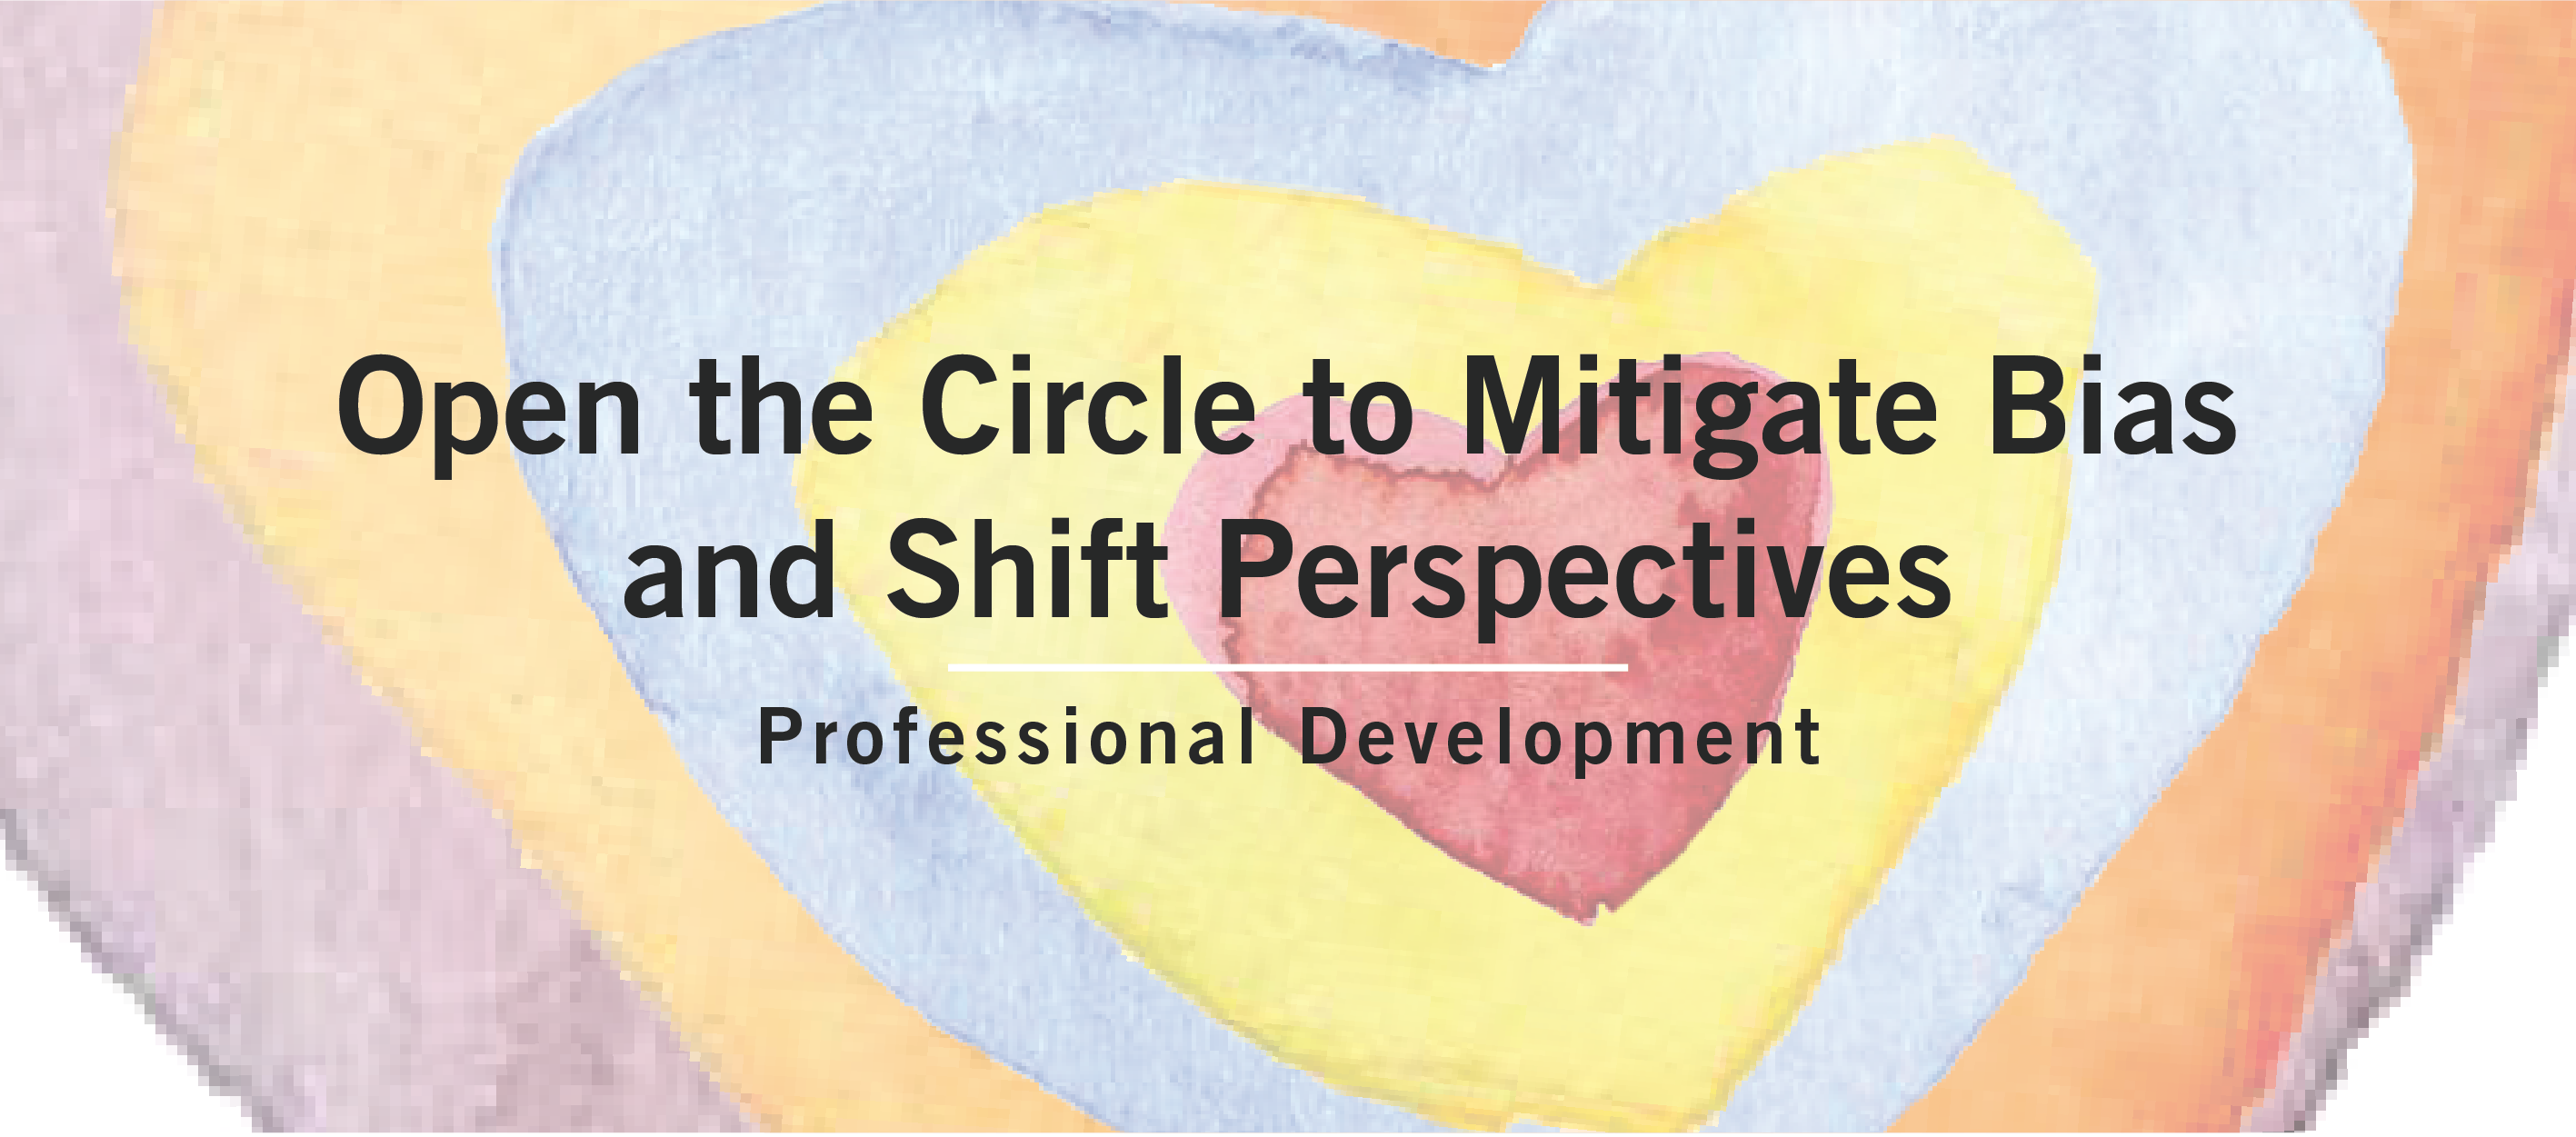 Open the Circle to Mitigate Bias and Shift Perspectives | August 6, 2021